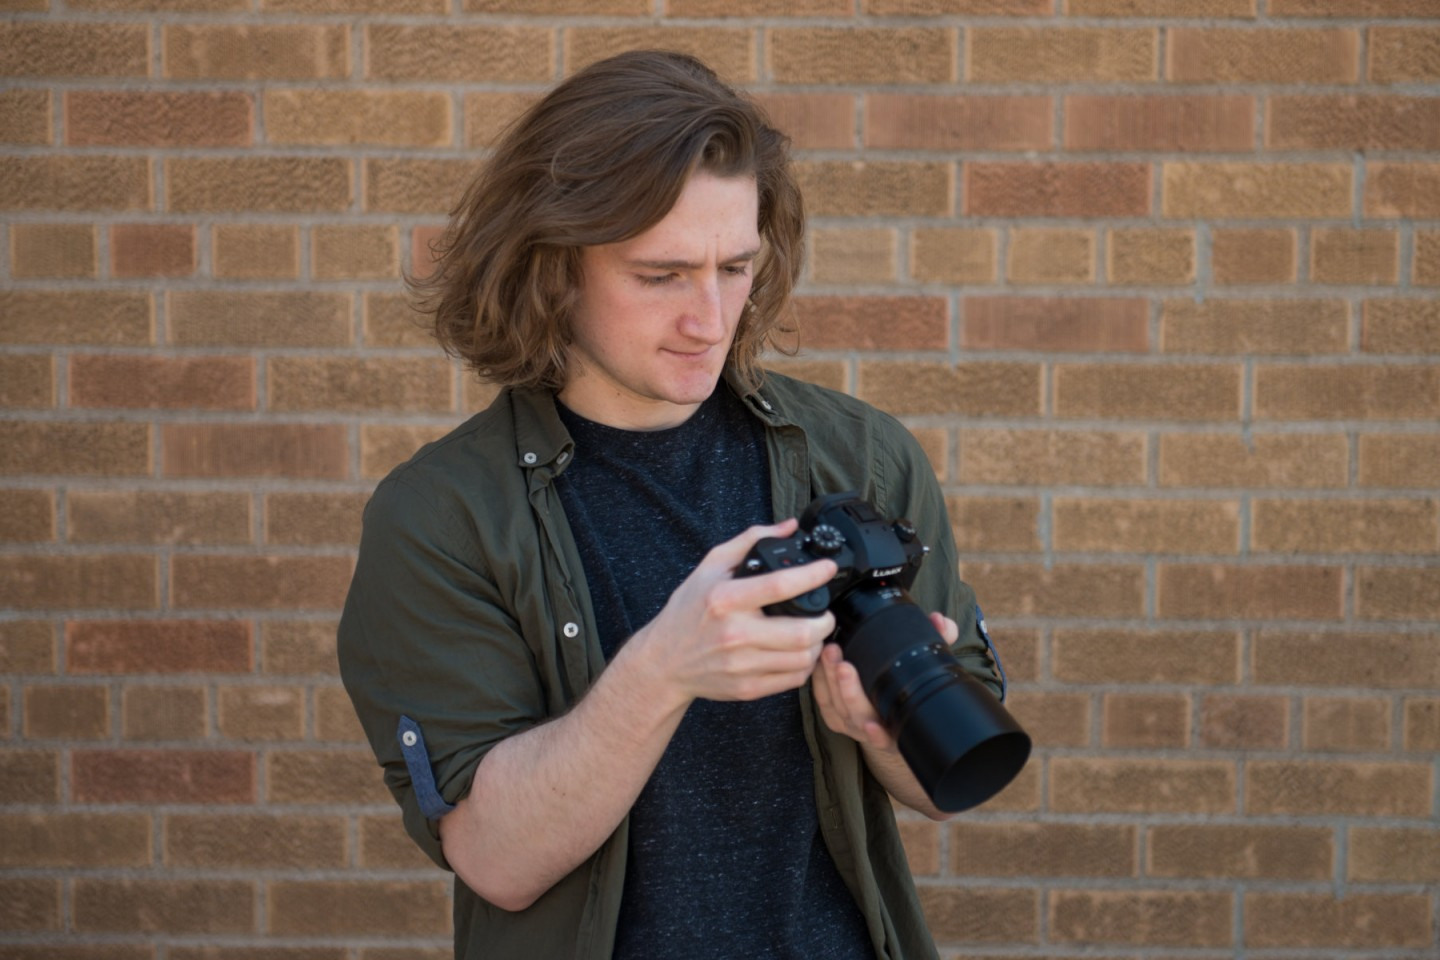 Josh Quatier looking at image on back of camera